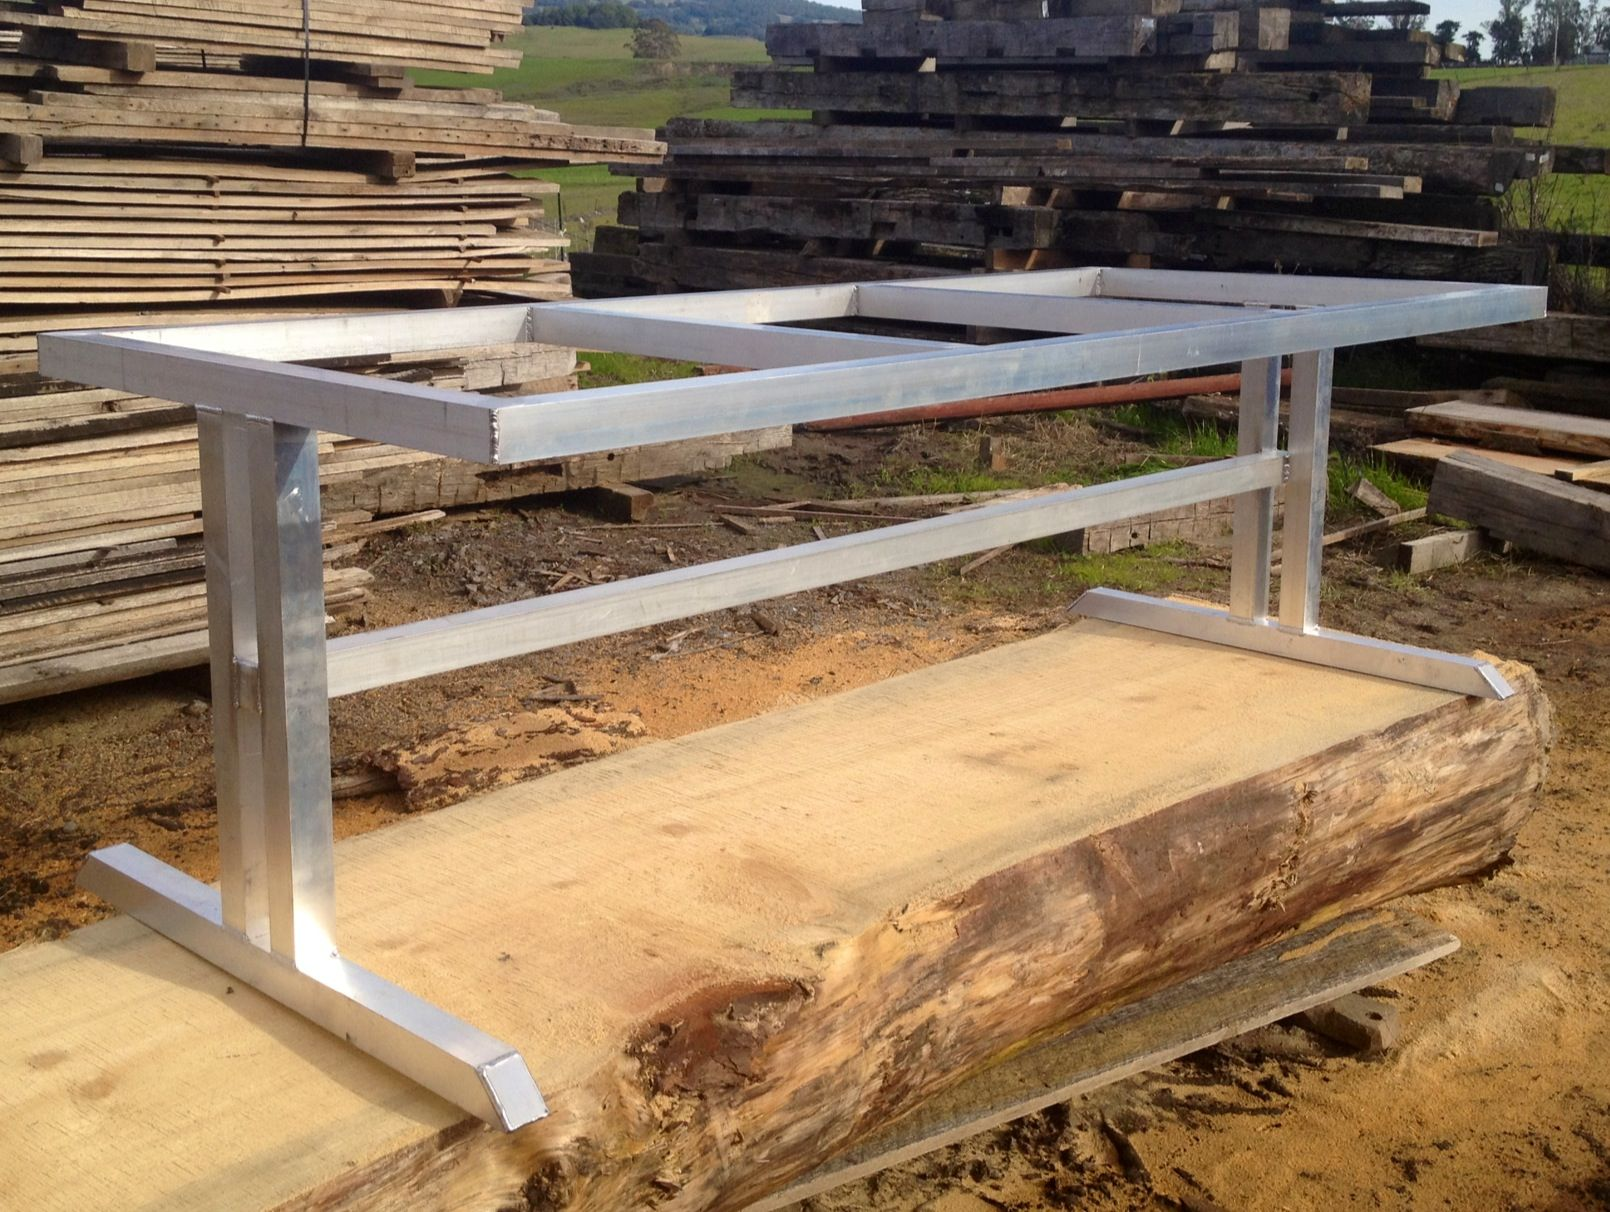 Amazing Aluminum Trestle Table Base Custom Fabricated By Blacku0027s Farmwood